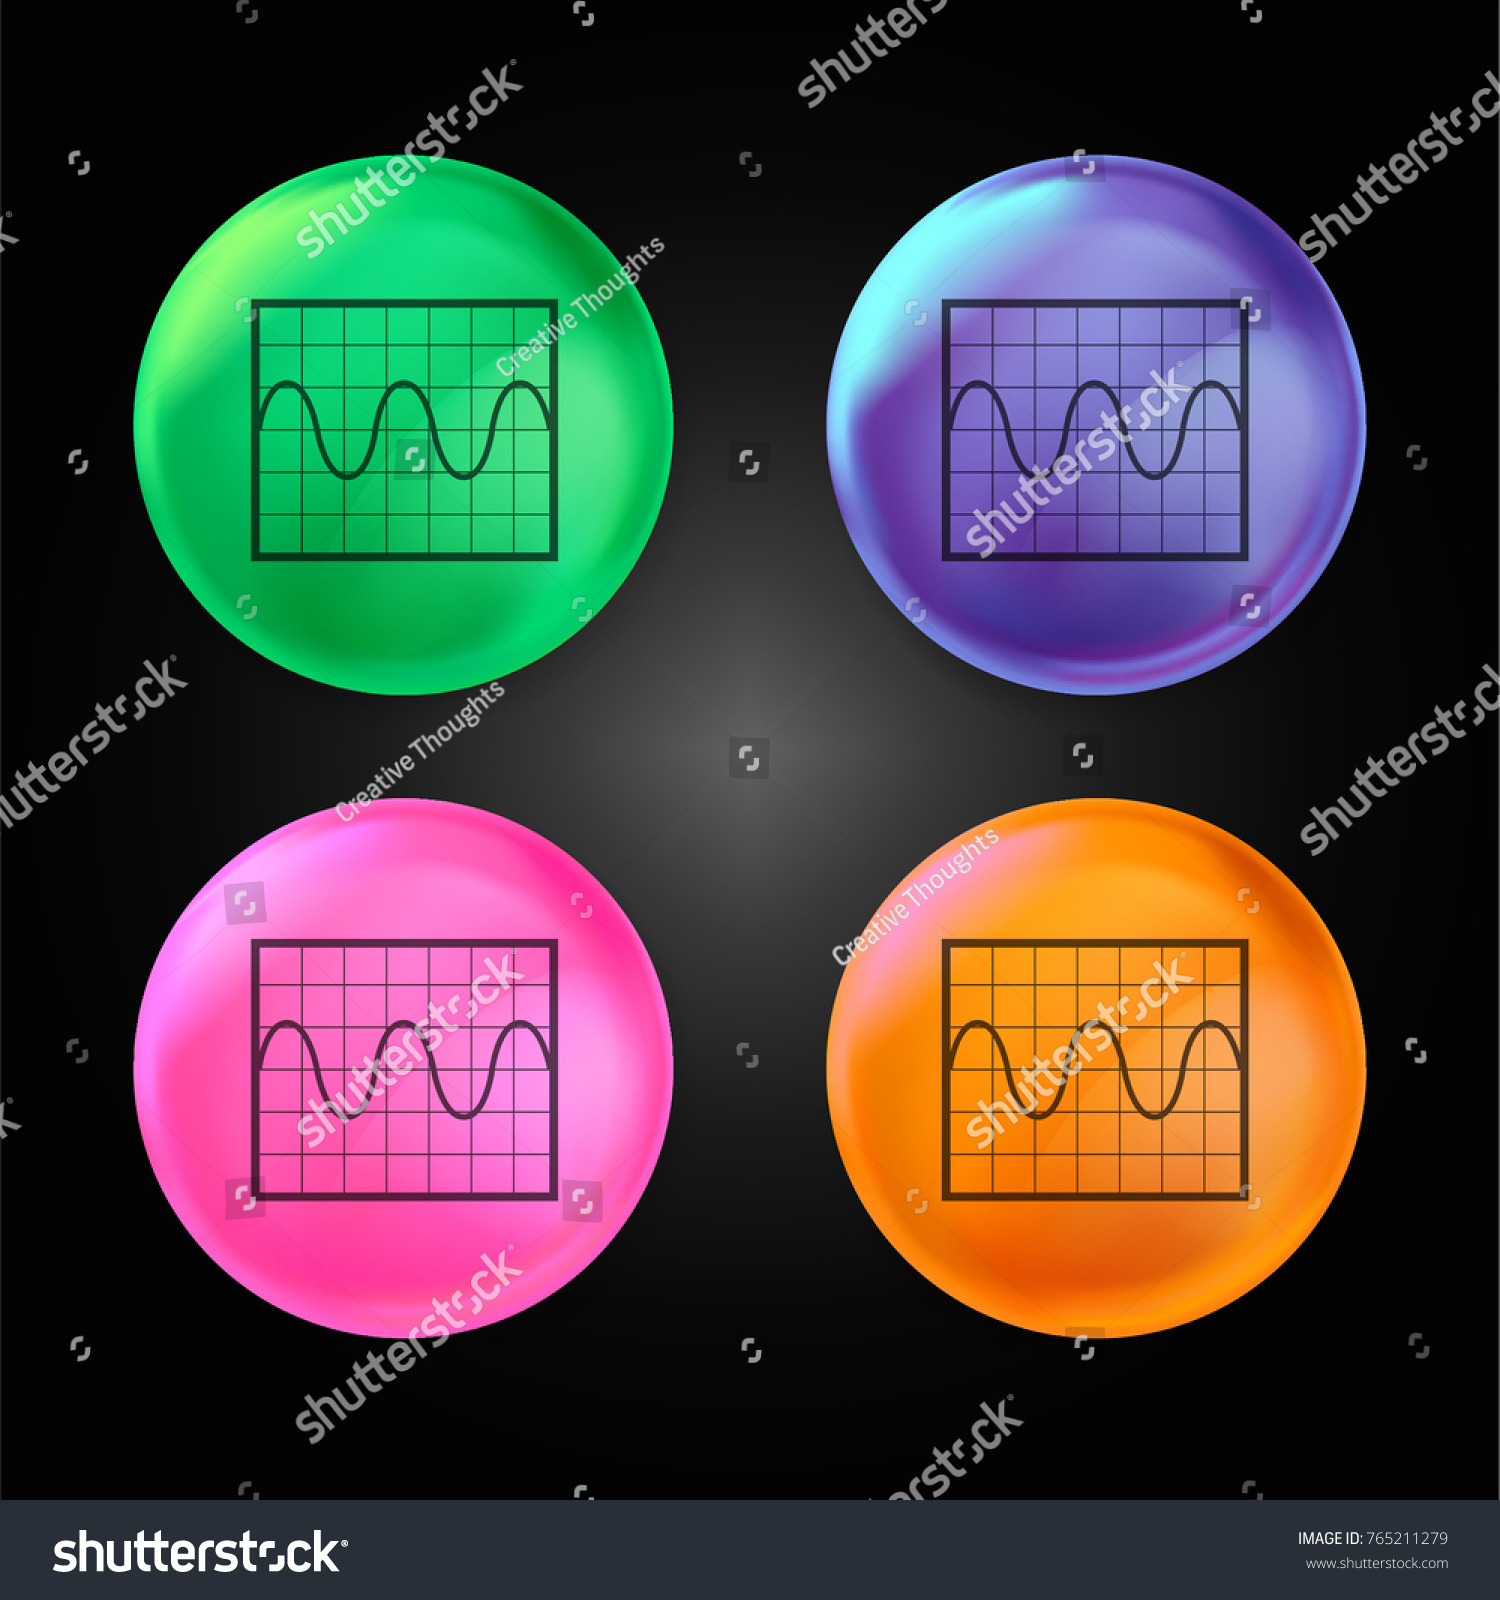 Sine wave graphic crystal ball design stock vector 765211279 sine wave graphic crystal ball design stock vector 765211279 shutterstock ccuart Images